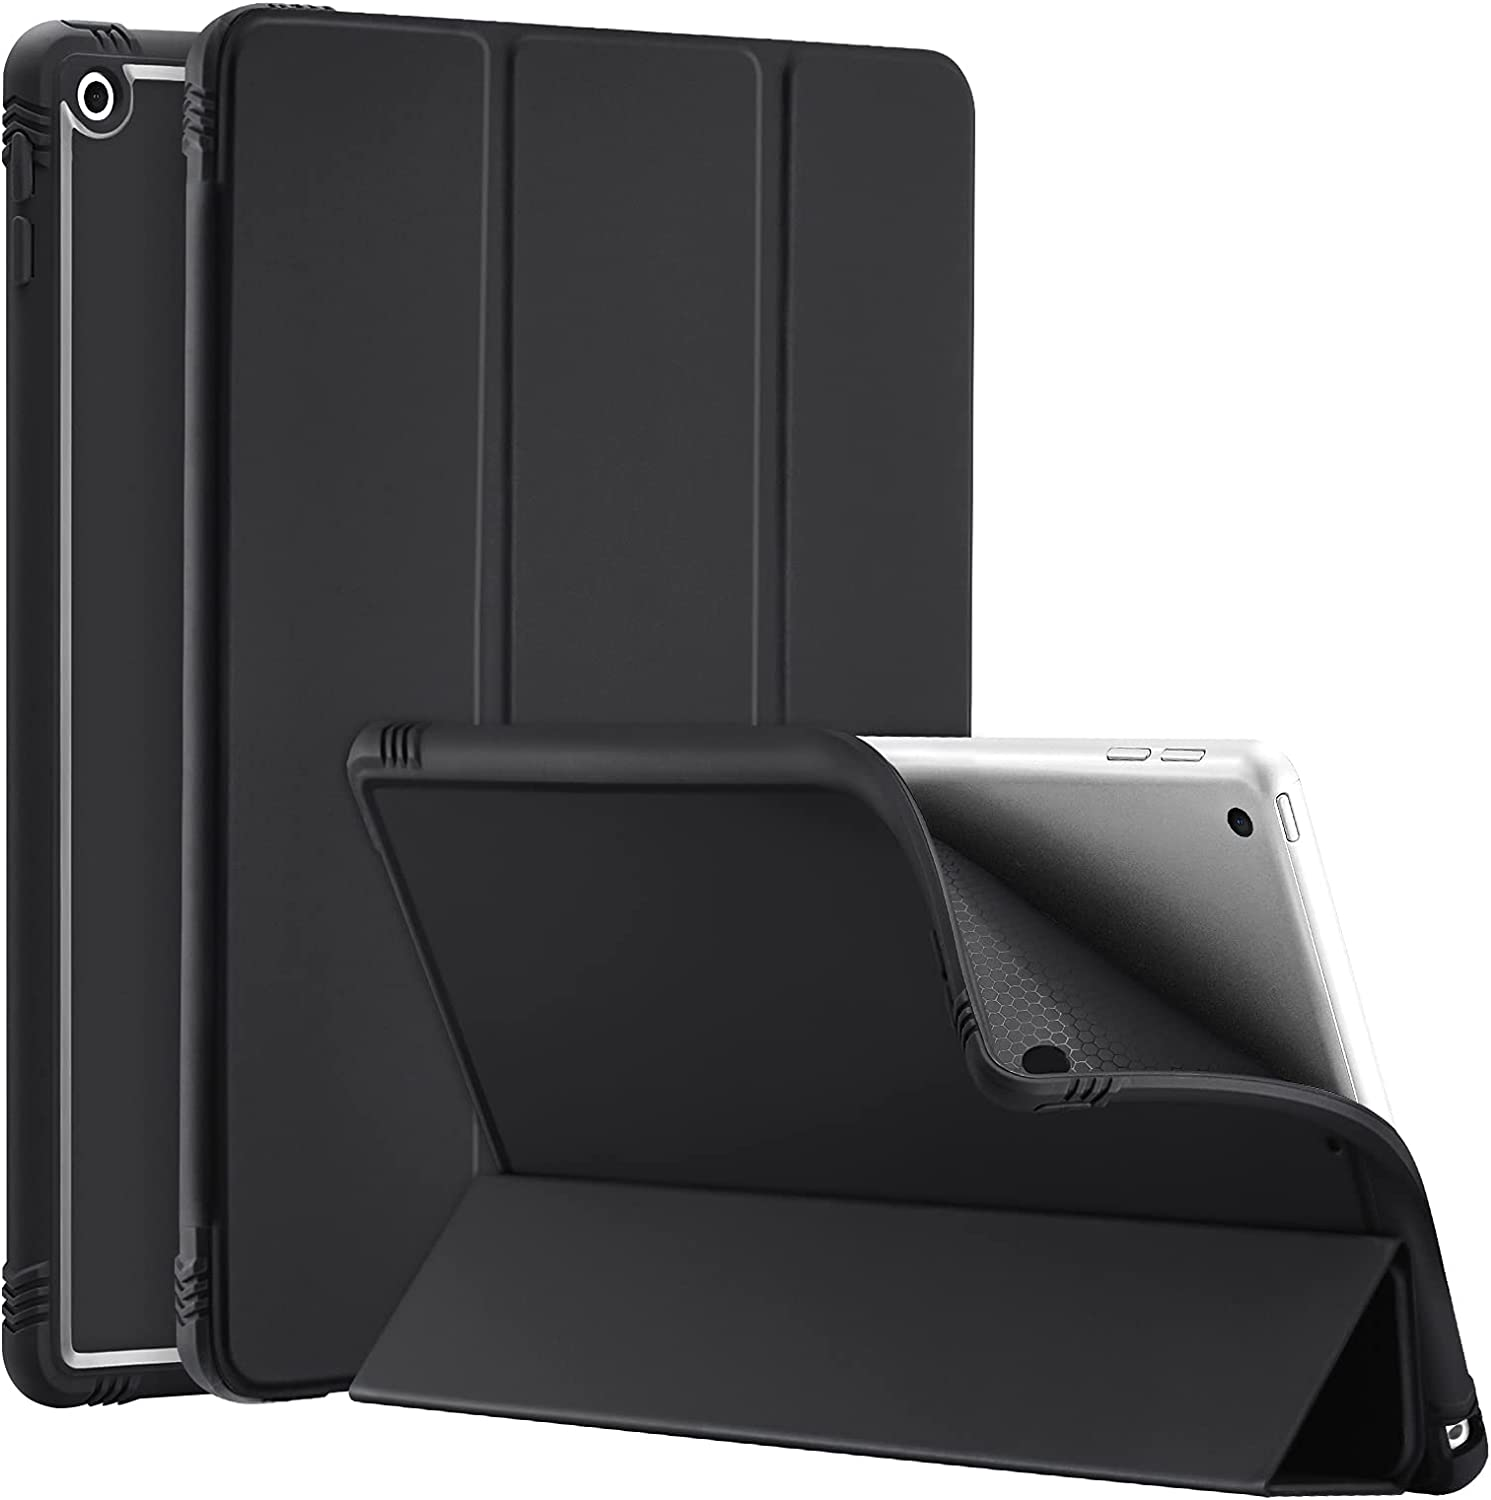 SIWENGDE for iPad 8th Generation 2020/iPad 7th Gen 2019 Case, iPad 10.2 inch Slim and Lightweight Trifold Stand Smart Cases Soft TPU Back Cover[Shock Absorption] Auto Wake/Sleep(Black)